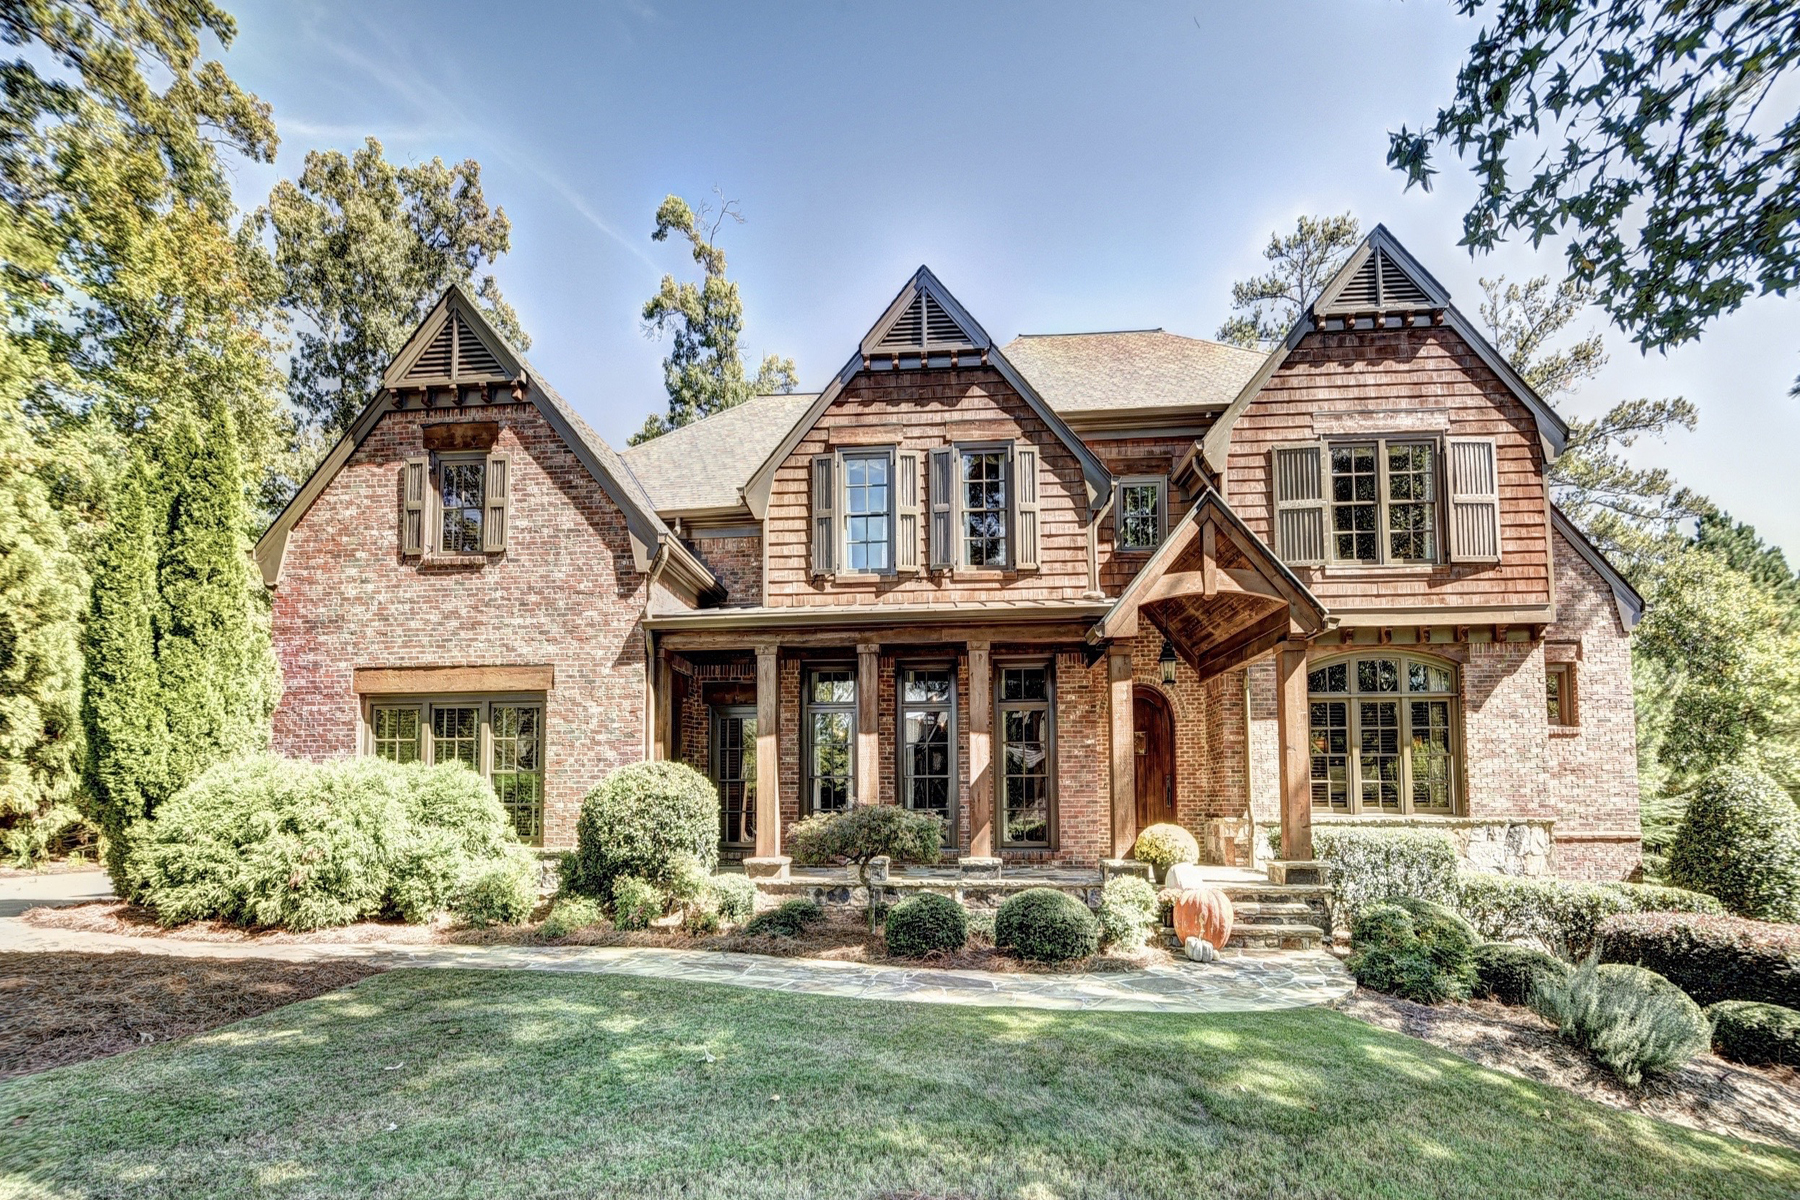 Rustic Elegance at The River Club 902 Little Darby Lane Suwanee, Geórgia 30024 Estados Unidos